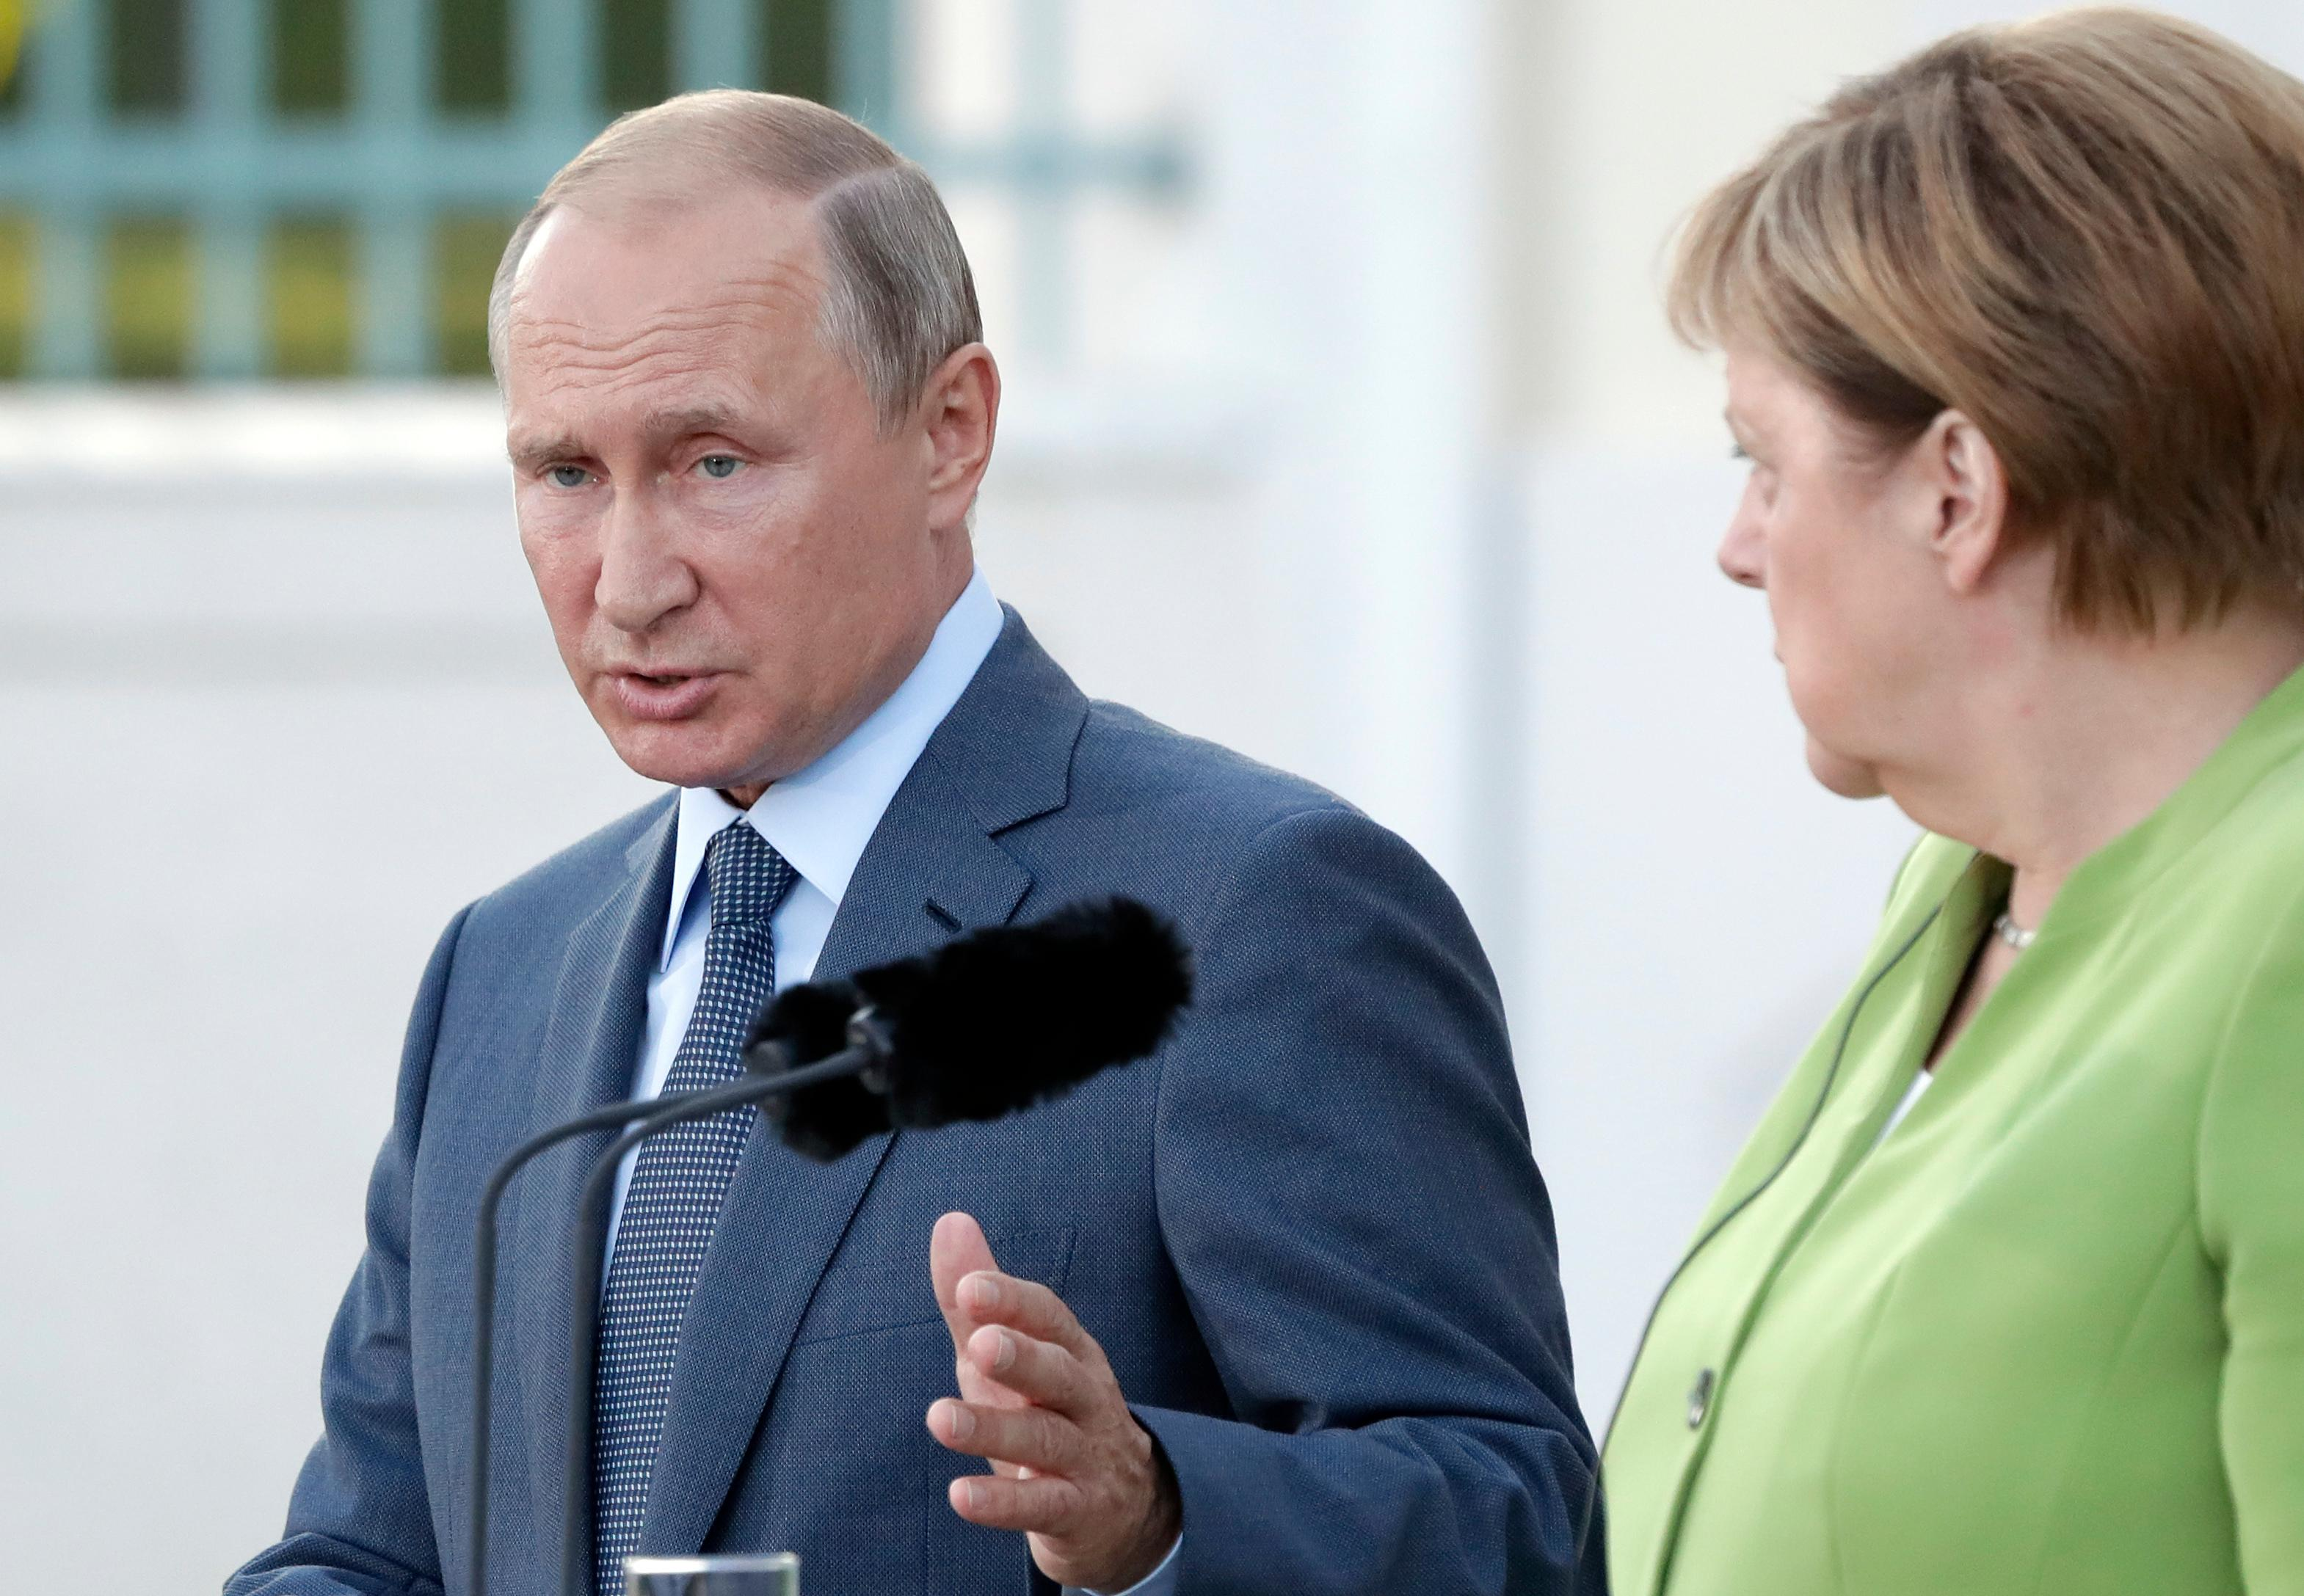 German Chancellor Angela Merkel and the President of Russia, Vladimir Putin{ } address the media during a joint statement Aug. 18. (AP Photo/Michael Sohn)